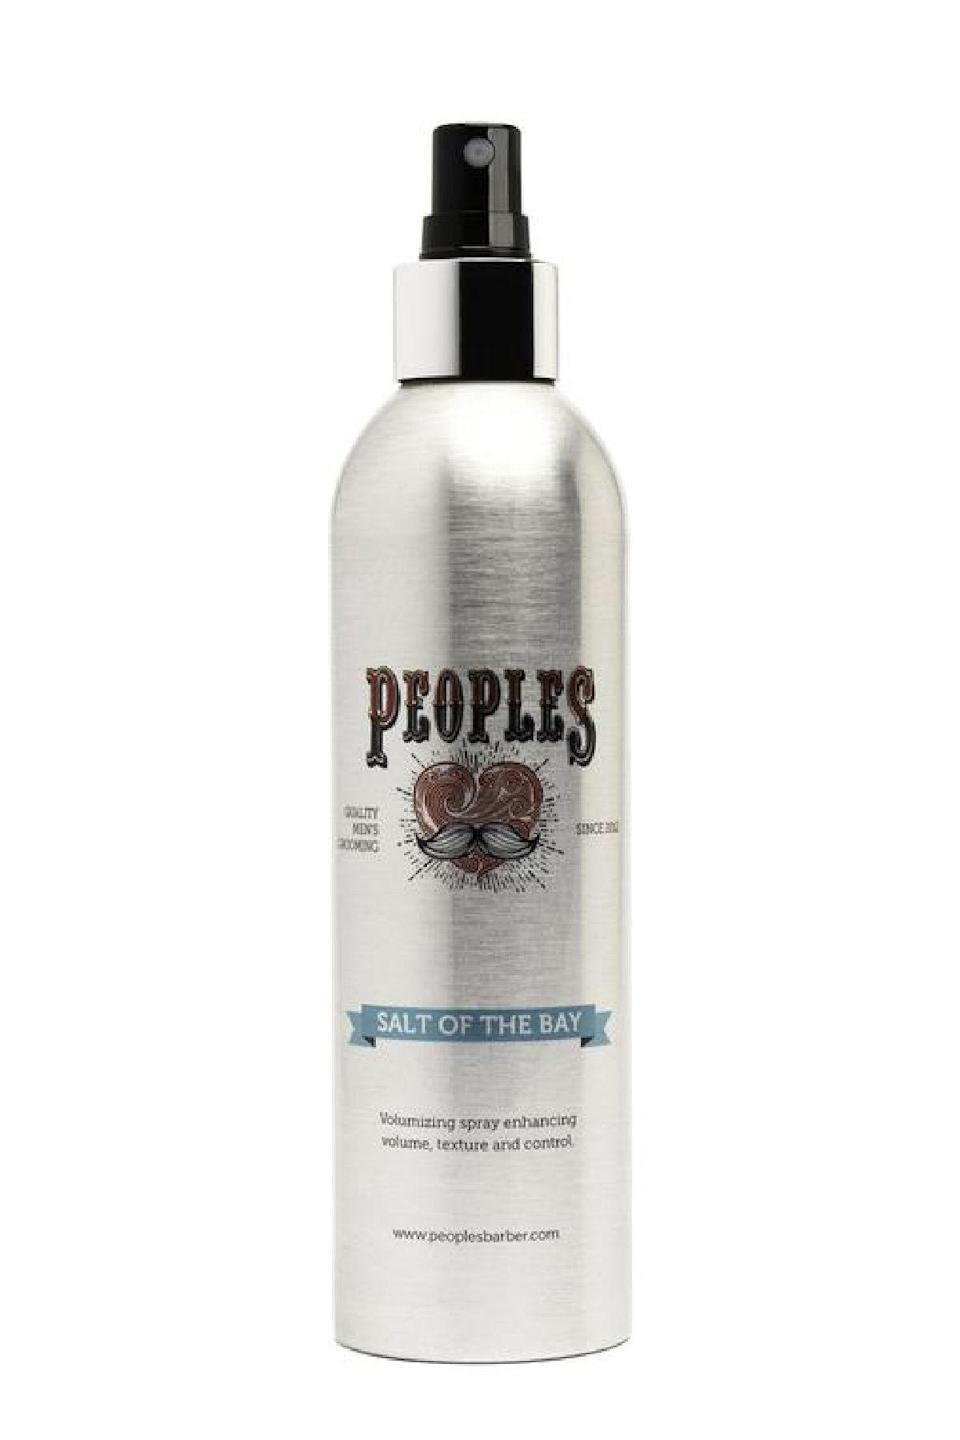 """<p><strong>Peoples Barber</strong></p><p>peoplesparber.com</p><p><strong>$25.00</strong></p><p><a href=""""https://shop.peoplesbarber.com/collections/hair-products/products/salt-of-the-bay"""" rel=""""nofollow noopener"""" target=""""_blank"""" data-ylk=""""slk:SHOP IT"""" class=""""link rapid-noclick-resp"""">SHOP IT</a></p><p>Don't let the six very simple ingredients fool you. Packed into this non-aerosol, low plastic bottle is an elegant salt spray formulation, light enough for fine strands but sturdy enough for wavy patterns, too. </p>"""